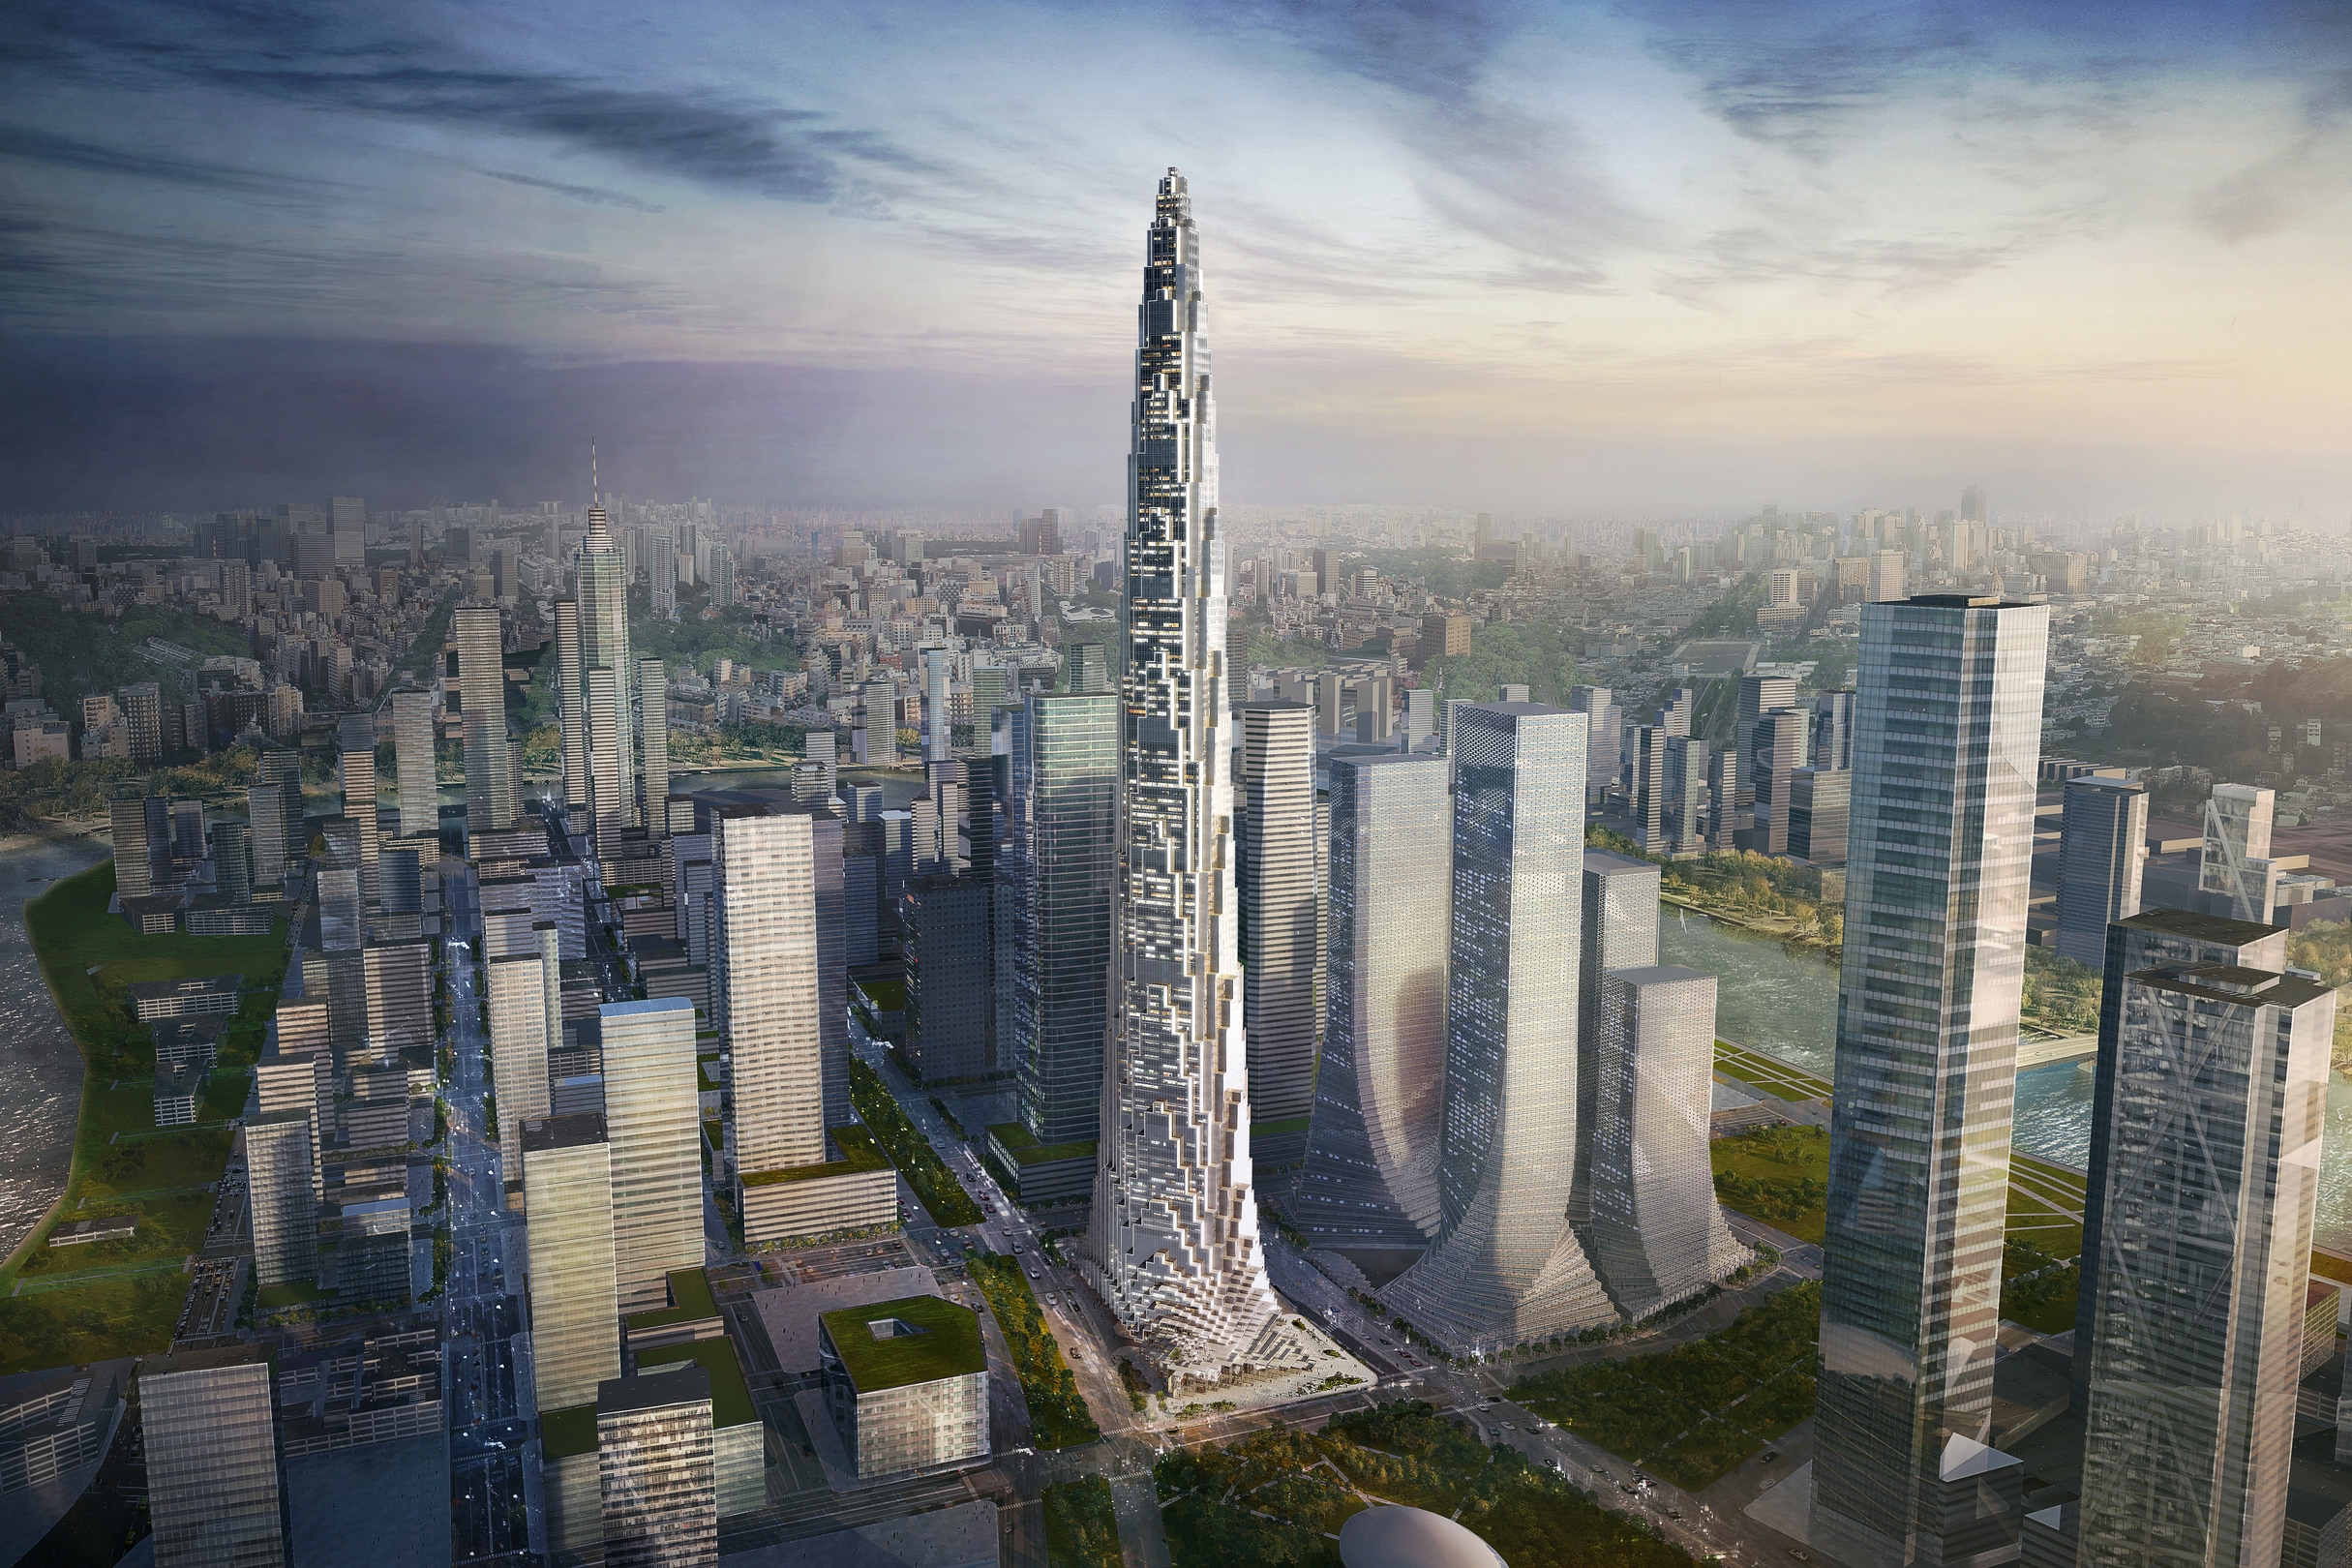 image courtesy of BIG    ROSE ROCK TOWER   (work done while employee at BIG)   Project Designer:  Brian Rousseau Rome  Program:  Commercial | Hotel | Residential | Retail  Size:  3,875,000 sf | 360,000 m2  Client:  Tianjin Jinxiao Real Estate Development Co. Ltd.  Location:  Tianjin, China  Status:  Schematic Design